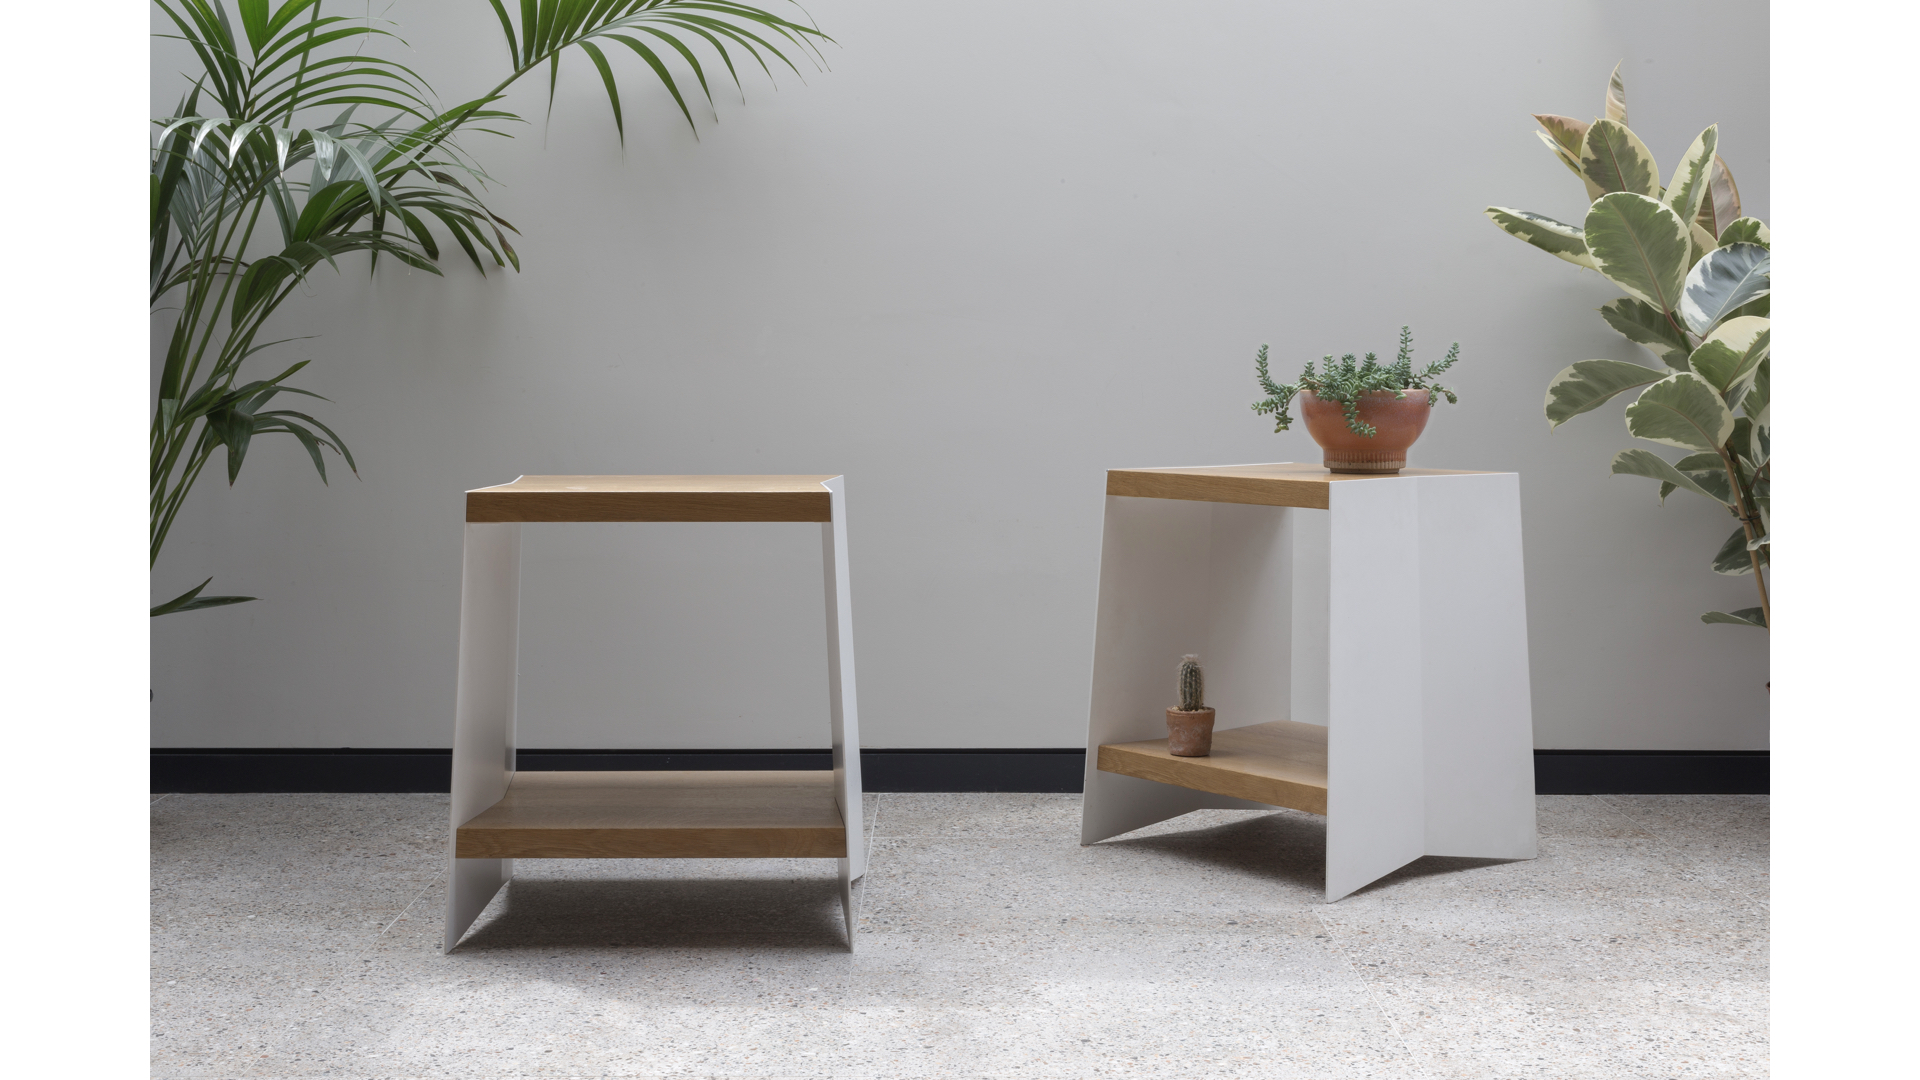 Fold End-Table i | © Bernardo Guillermo Studio